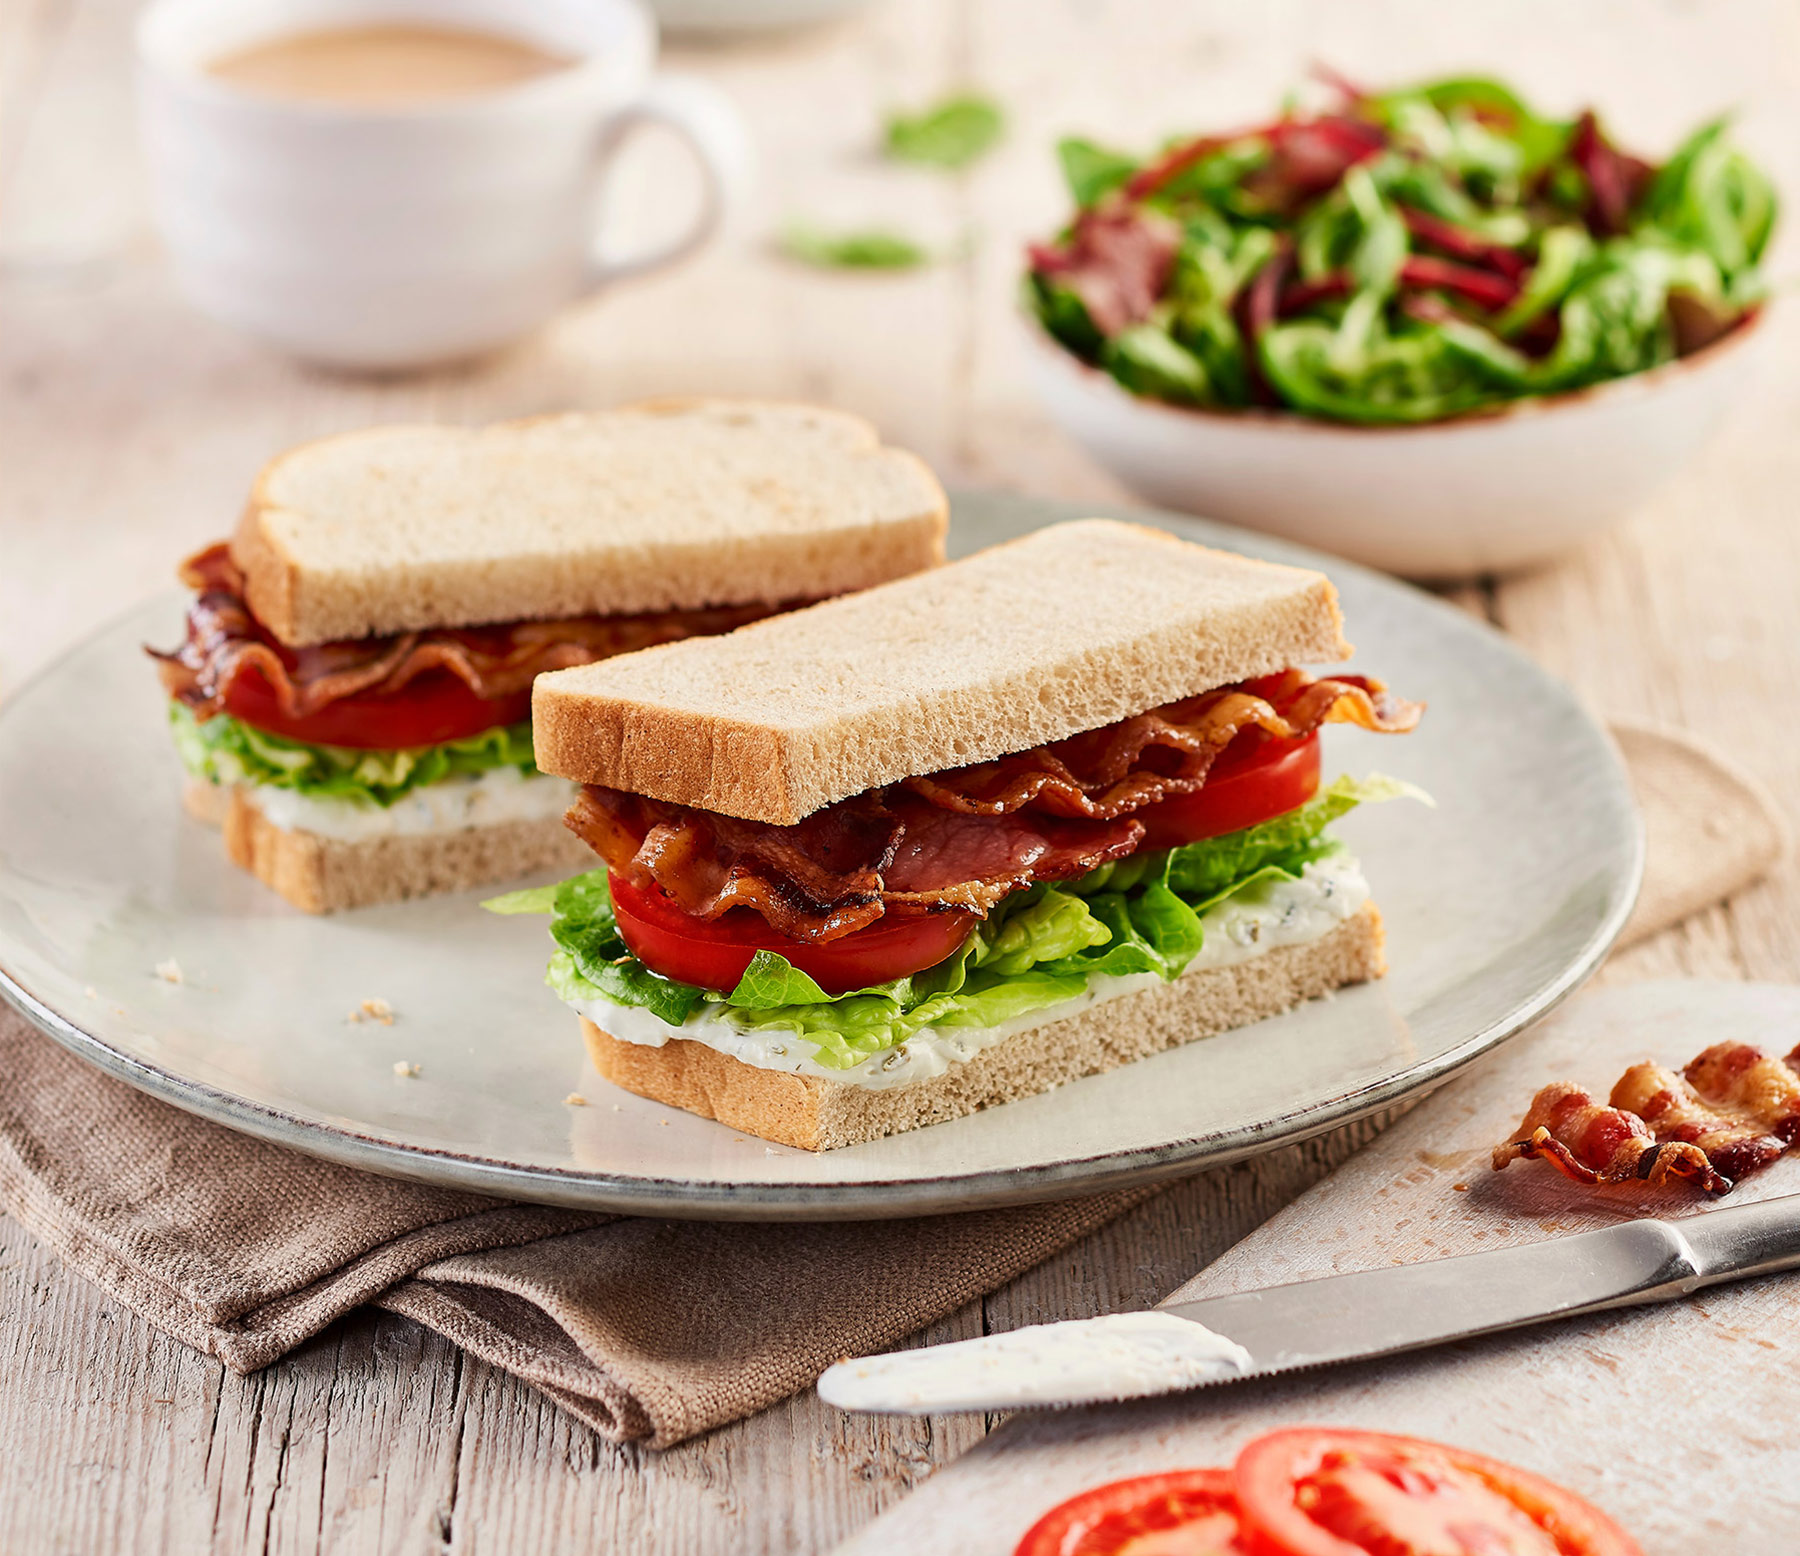 Bacon sandwich photography